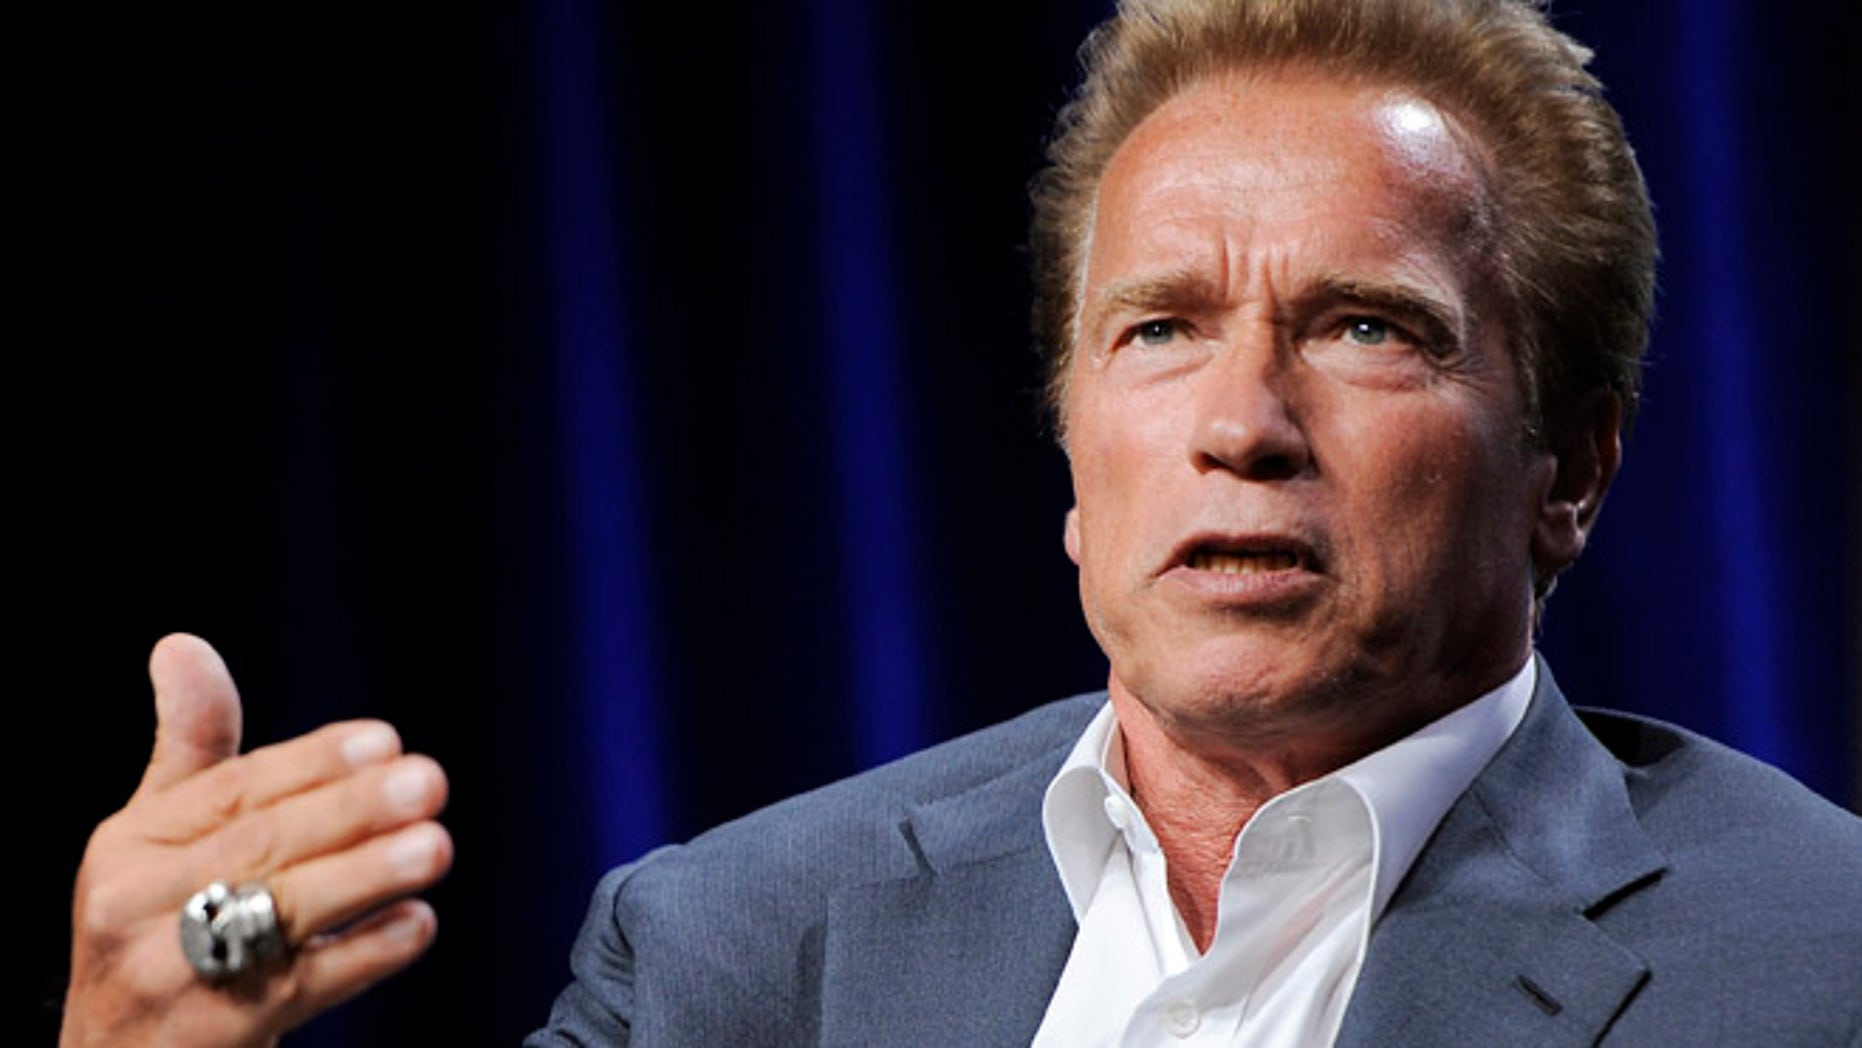 """Former California Gov. Arnold Schwarzenegger, the subject of a forthcoming ESPN short film, answers a question during the ESPN Films """"30 for 30 Shorts"""" TCA panel discussion at the Beverly Hilton hotel on Friday, Aug. 3, 2012 in Beverly Hills, Calif. The film will focus on Schwarzenegger's teenage years in the Austrian army. (Photo by Chris Pizzello/Invision/AP)"""